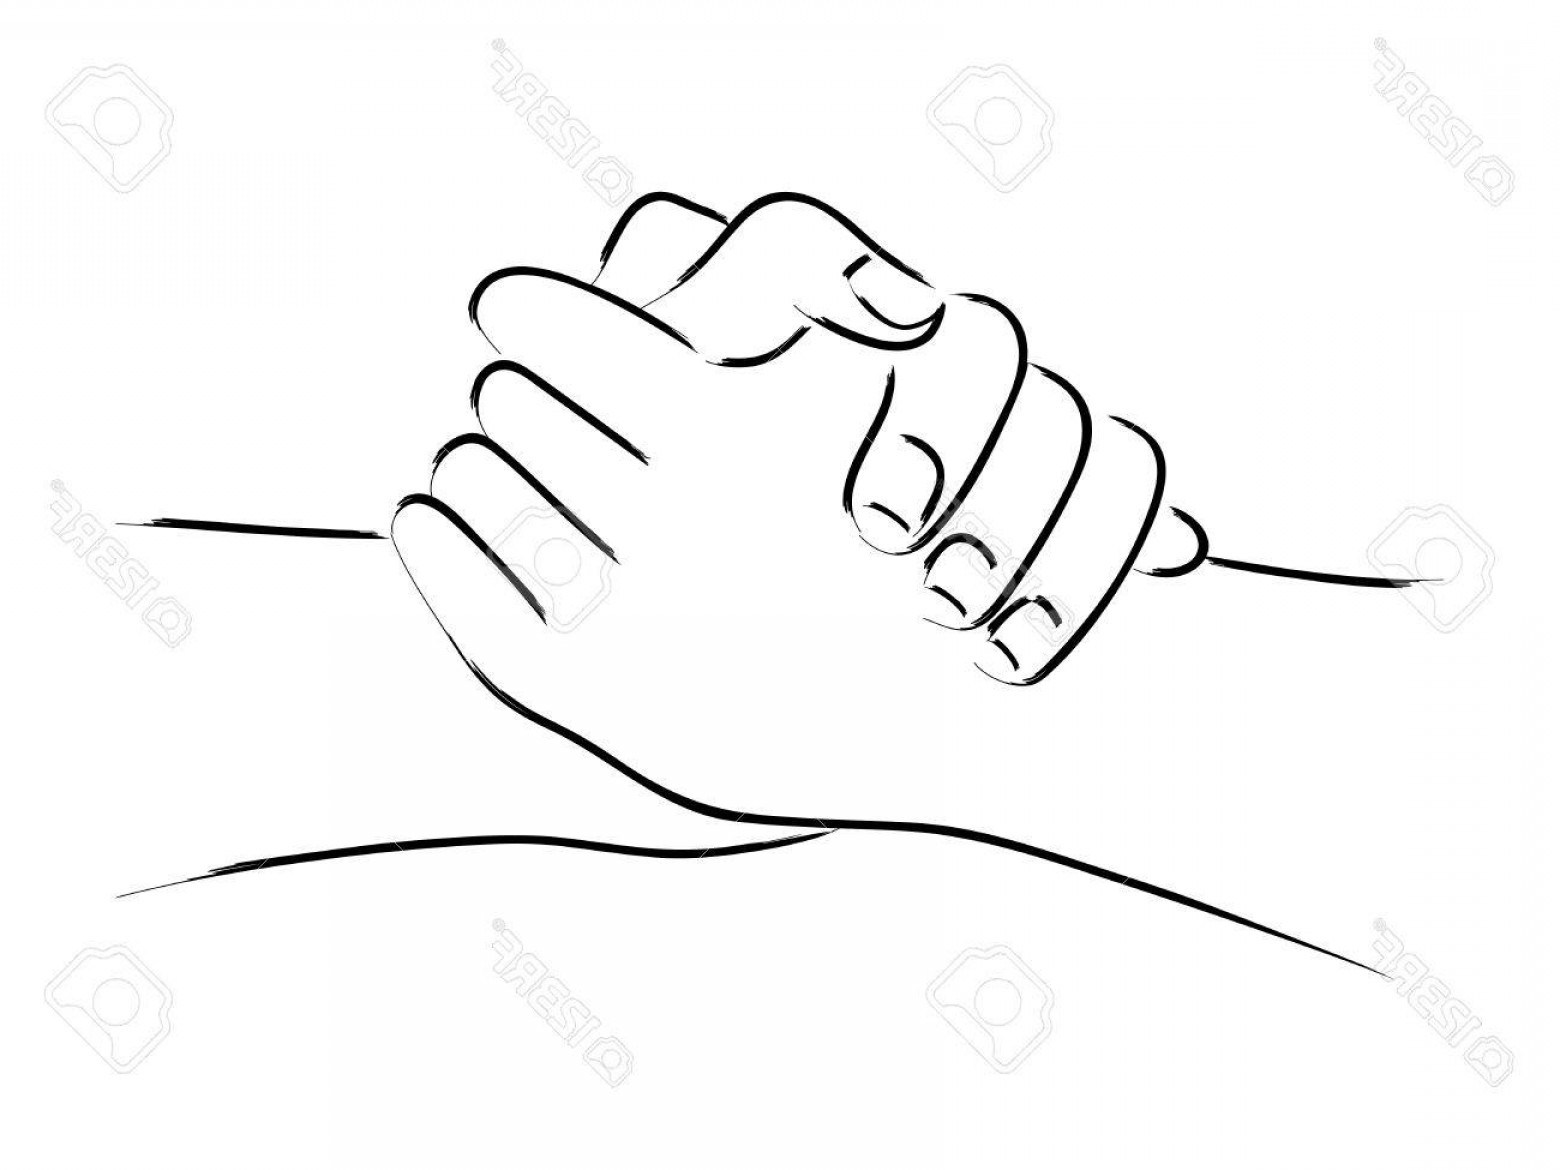 Two hands holding clipart 5 » Clipart Portal.